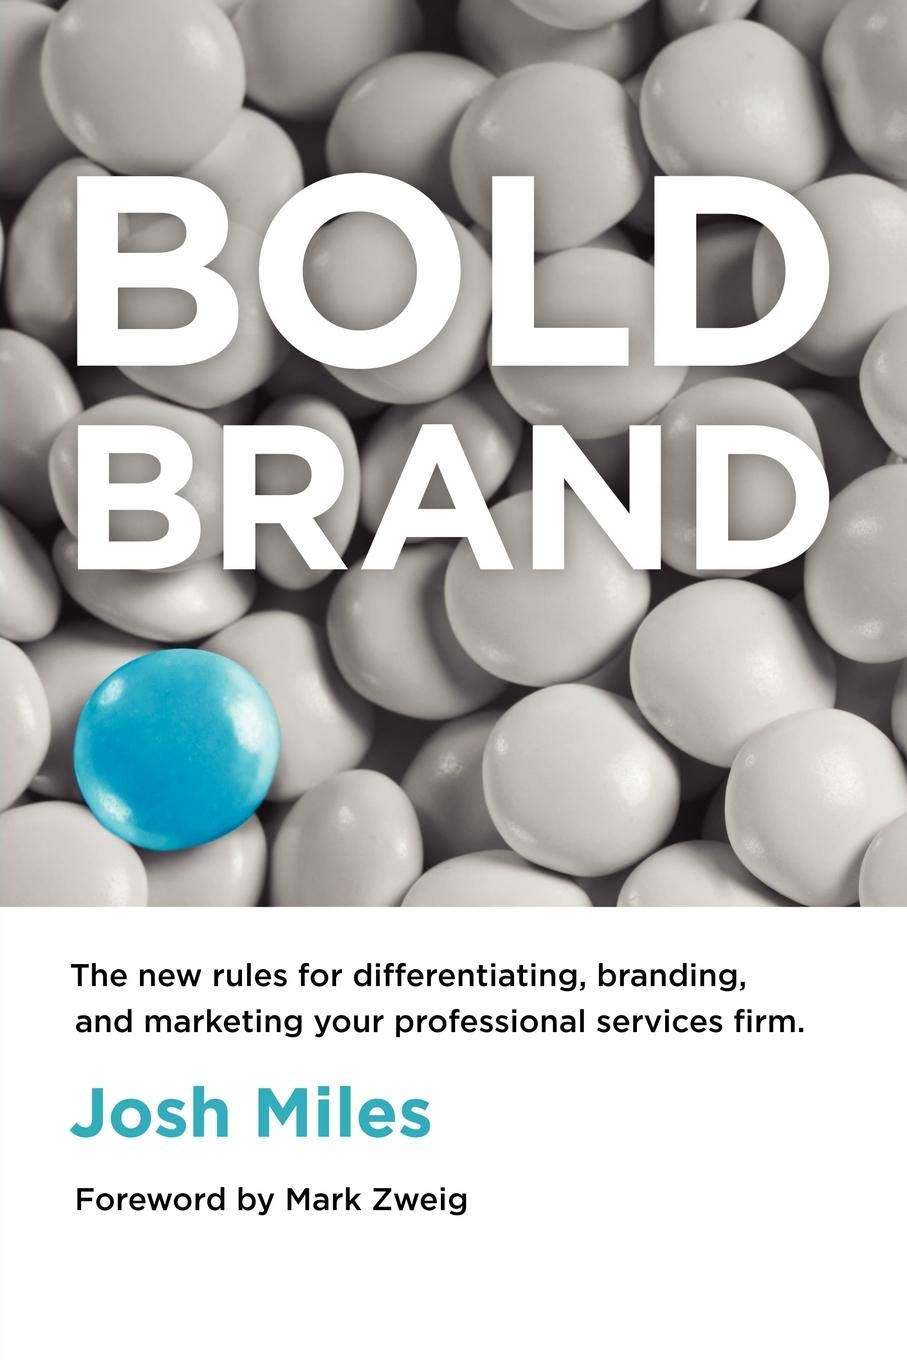 de280d5bceff Bold Brand  The New Rules for Differentiating